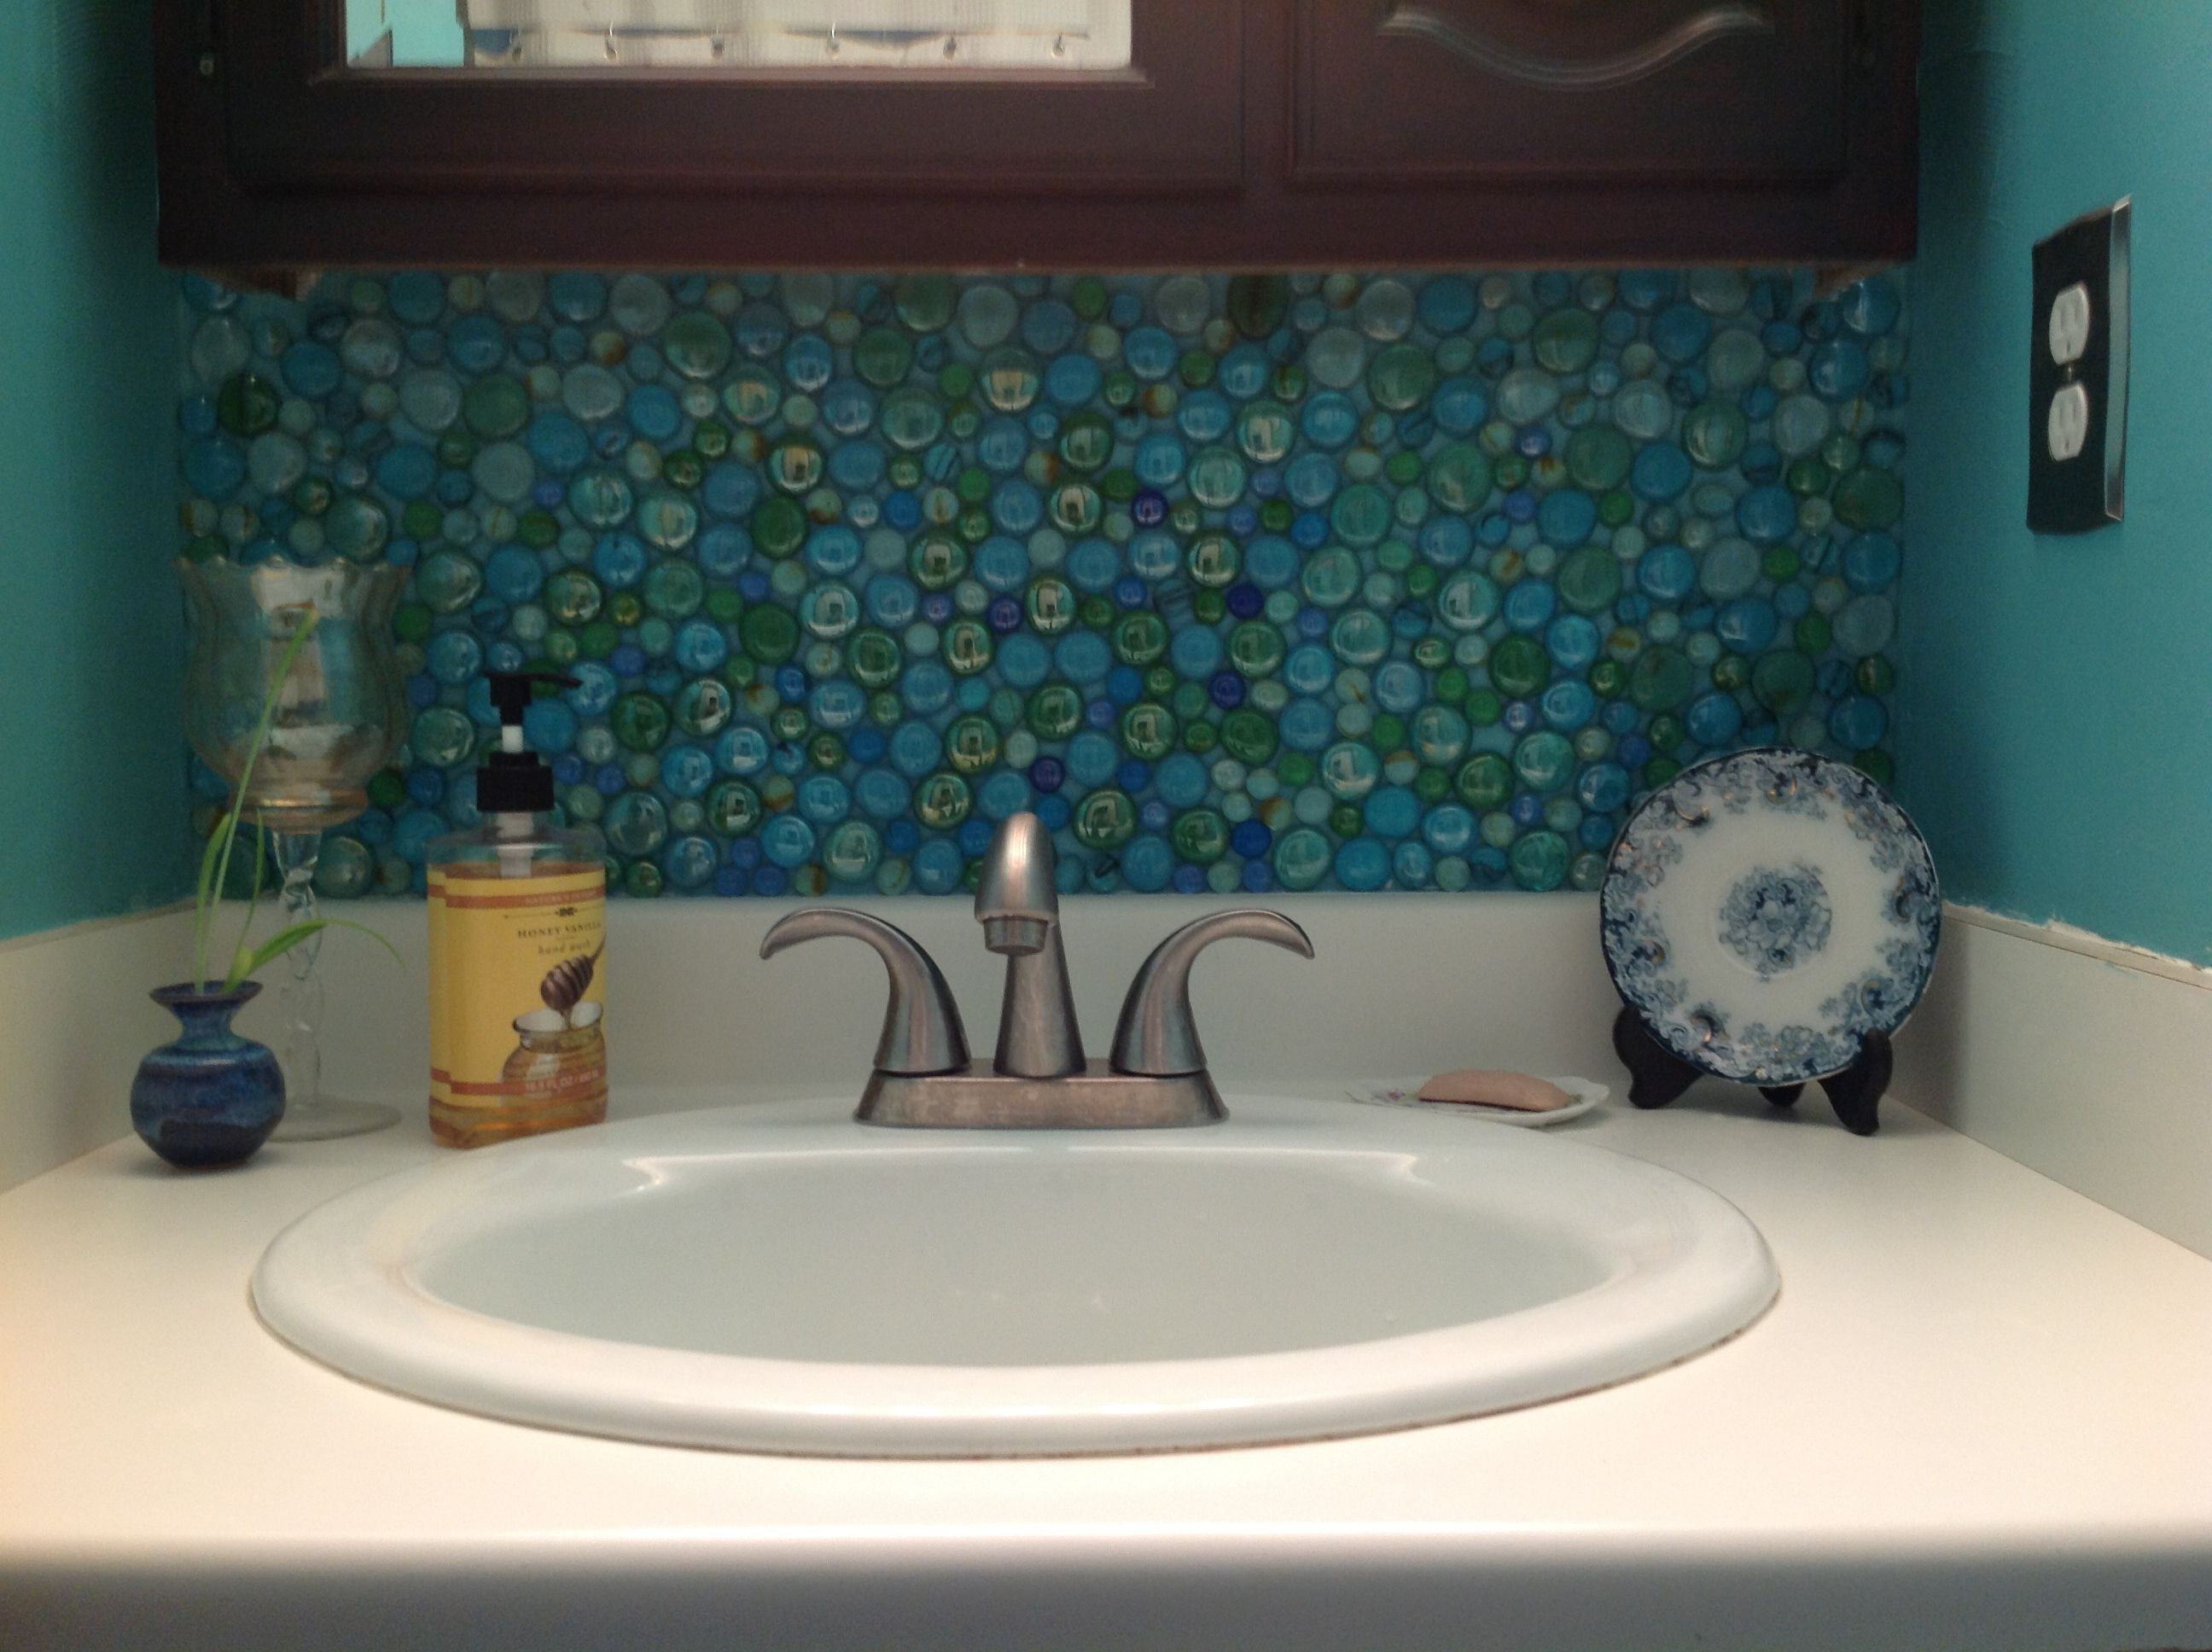 - Glass Beads From Dollar Store For Bathroom Back Splash! Bathroom